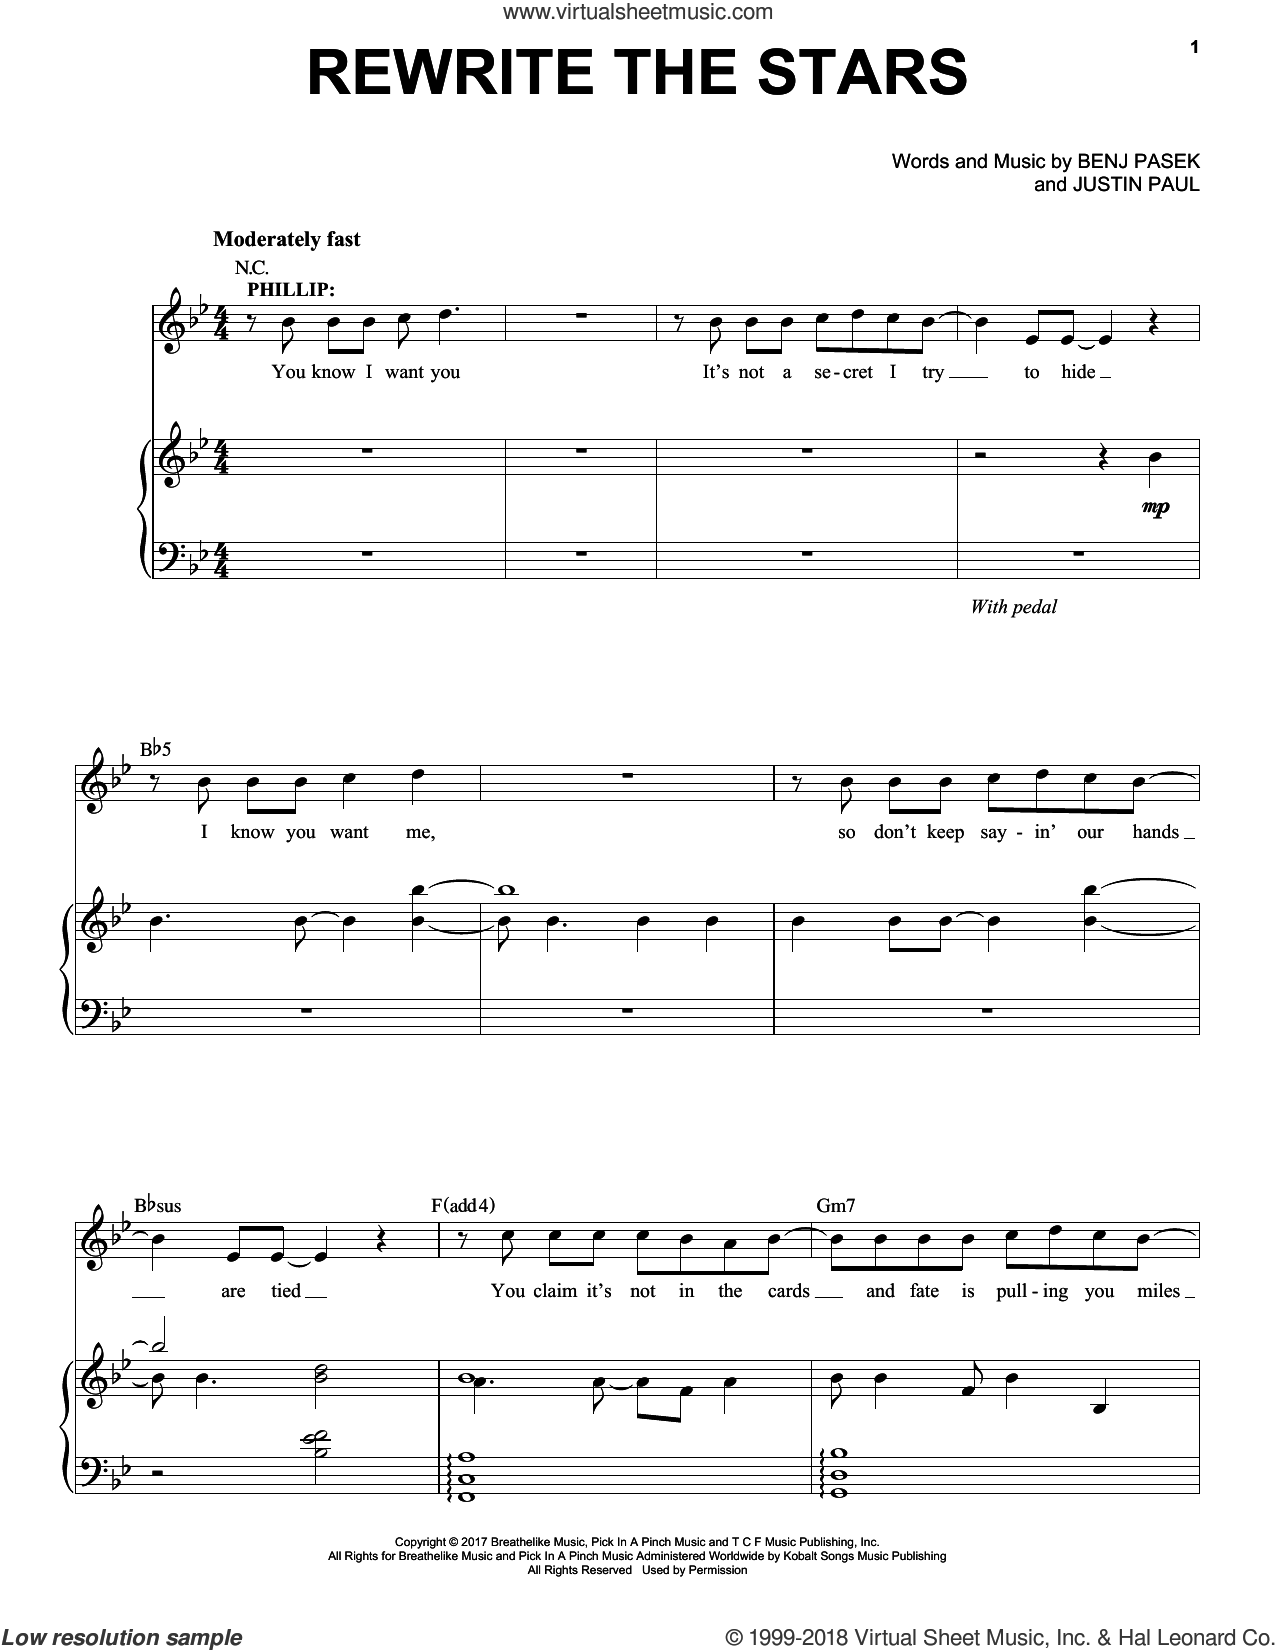 Rewrite The Stars (from The Greatest Showman) sheet music for voice and piano by Pasek & Paul, Zac Efron & Zendaya, Benj Pasek and Justin Paul, intermediate skill level